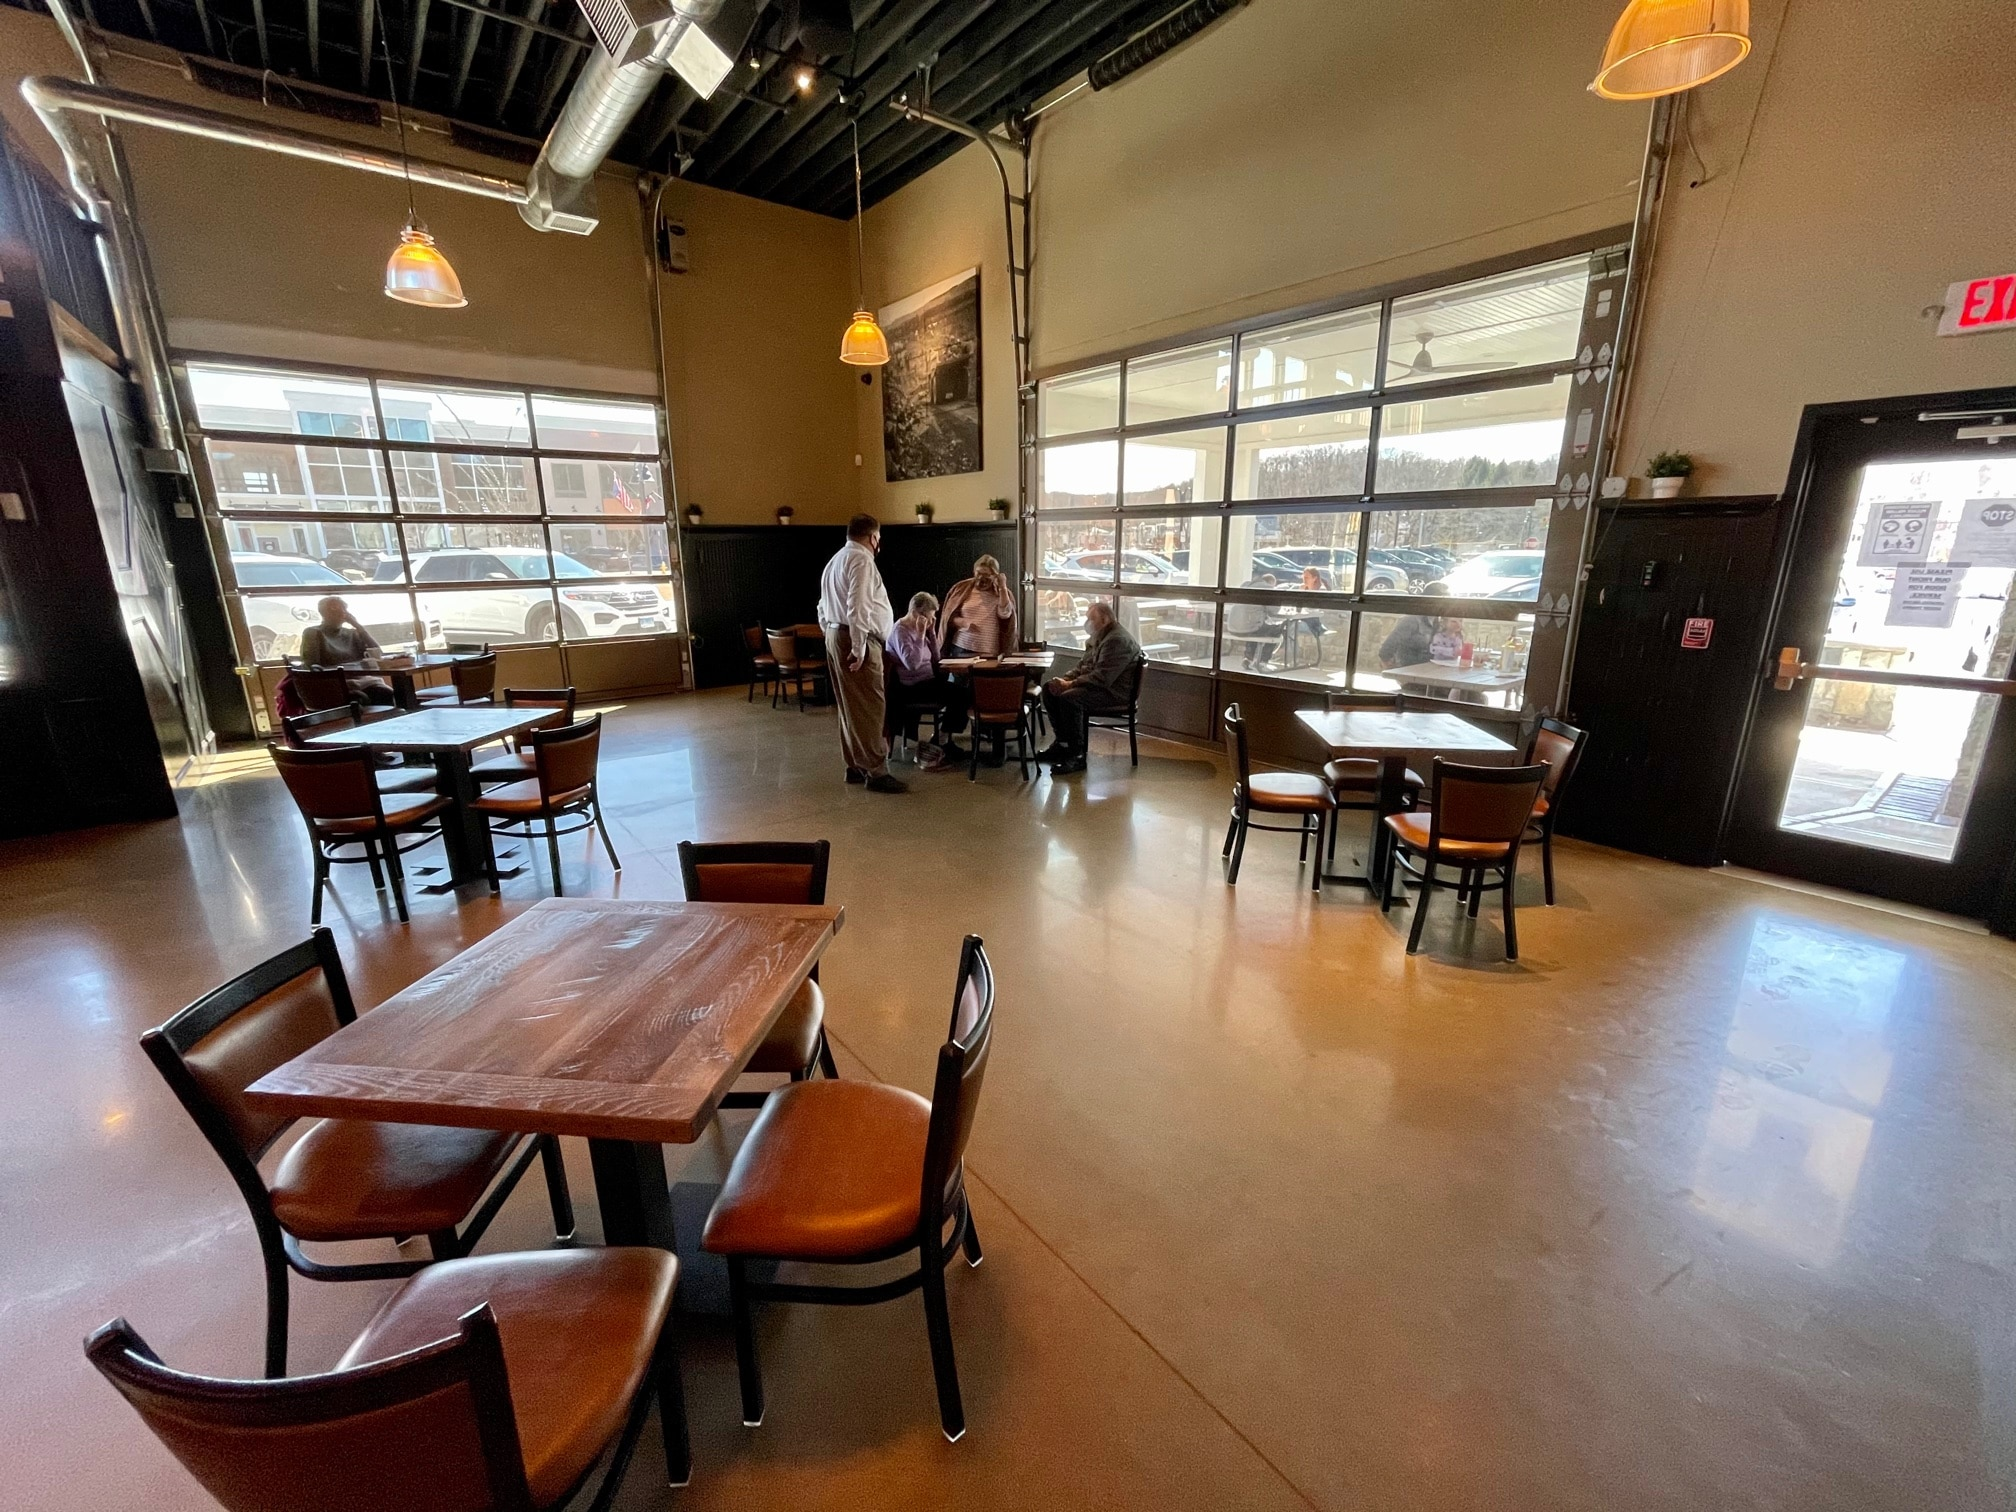 Restaurants were the hardest hit industry by COVID closures. But they had a plan.